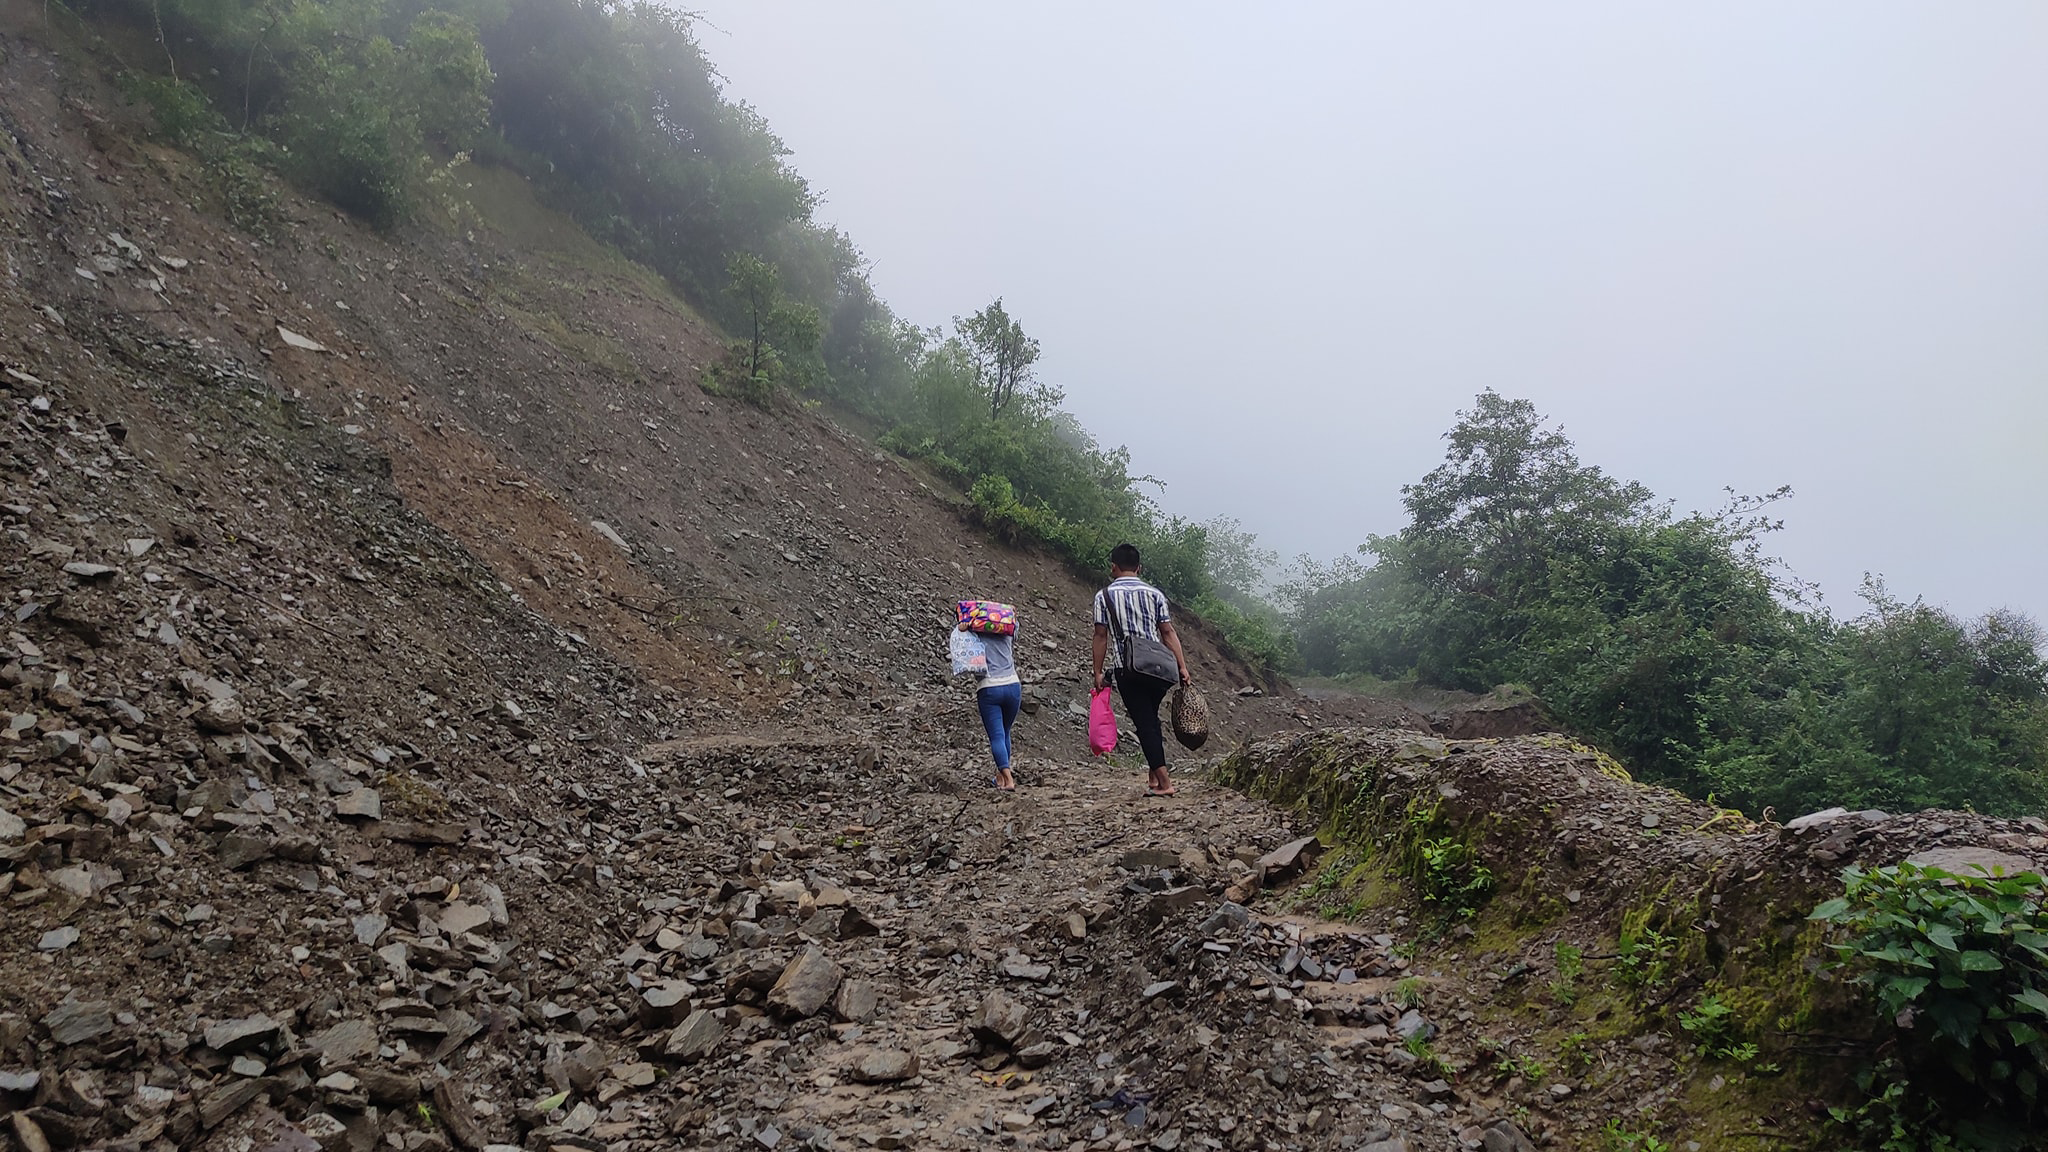 Credit: One Heart Worldwide. Description: Photo shows two people walking barefoot on rugged terrain. Between the two of them, they are carrying five bags.